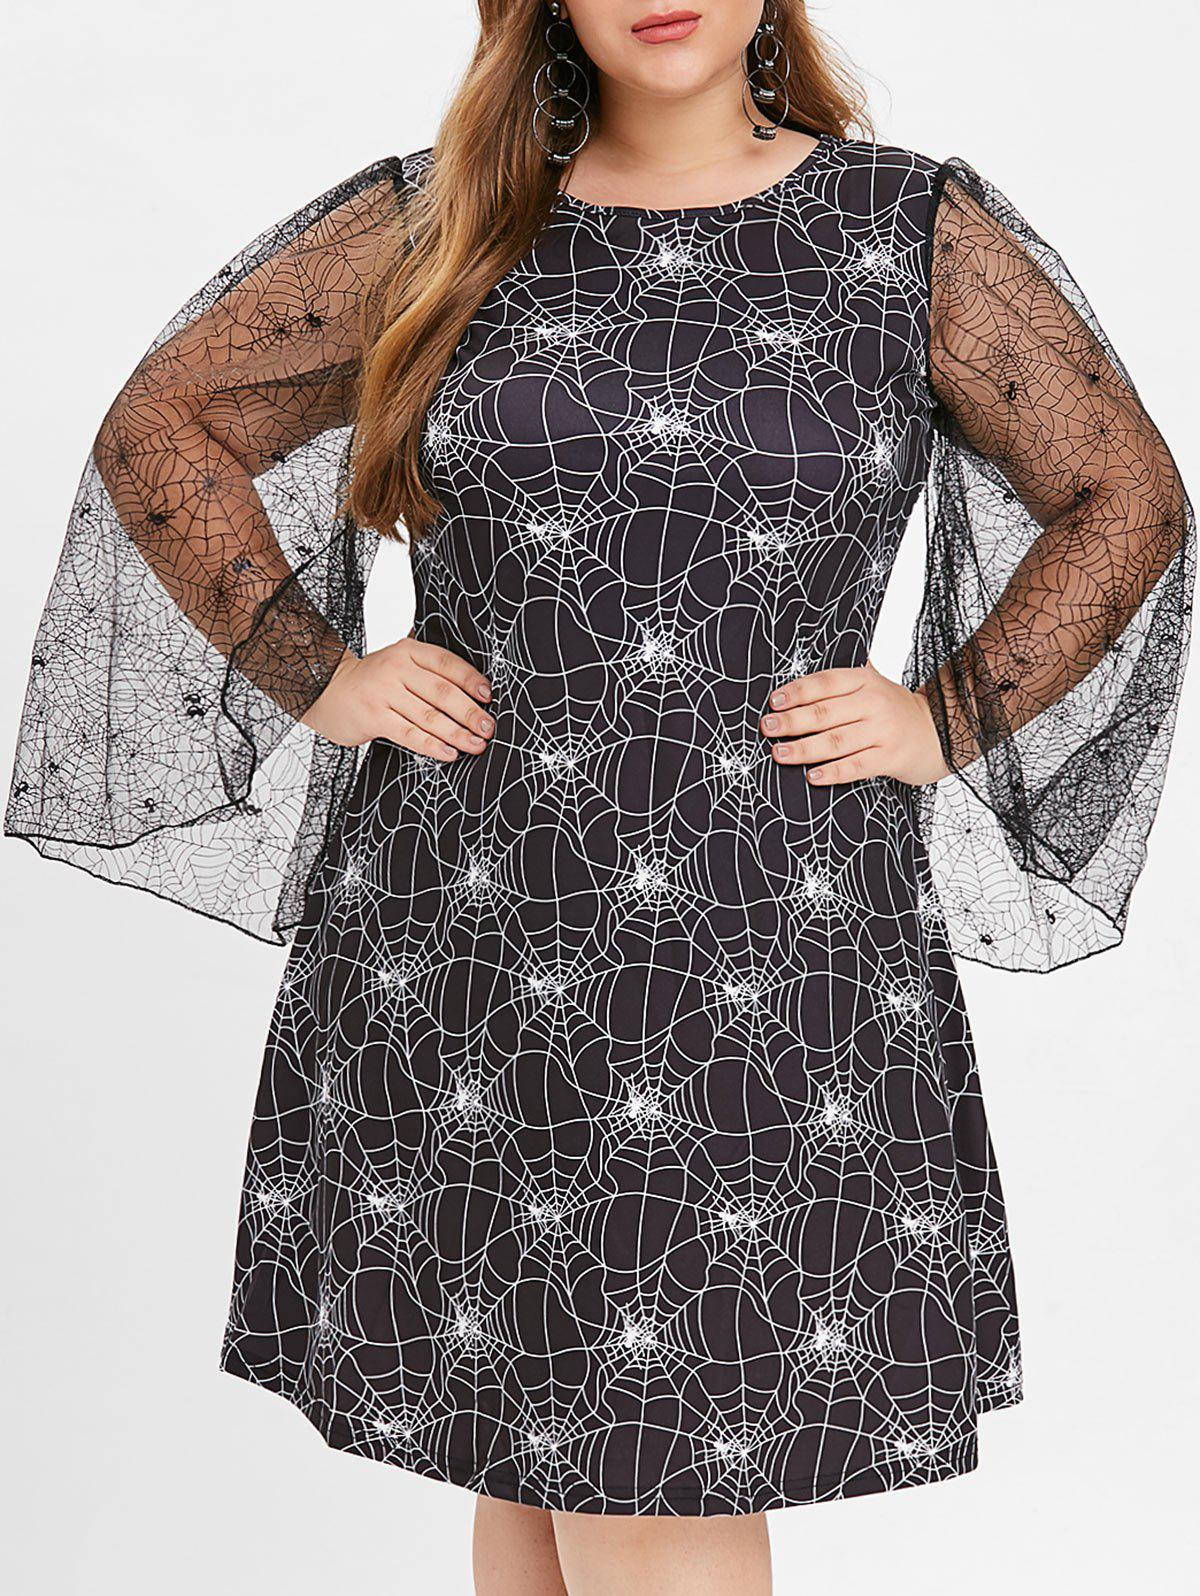 New Halloween Sheer Plus Size Spider Web Dress